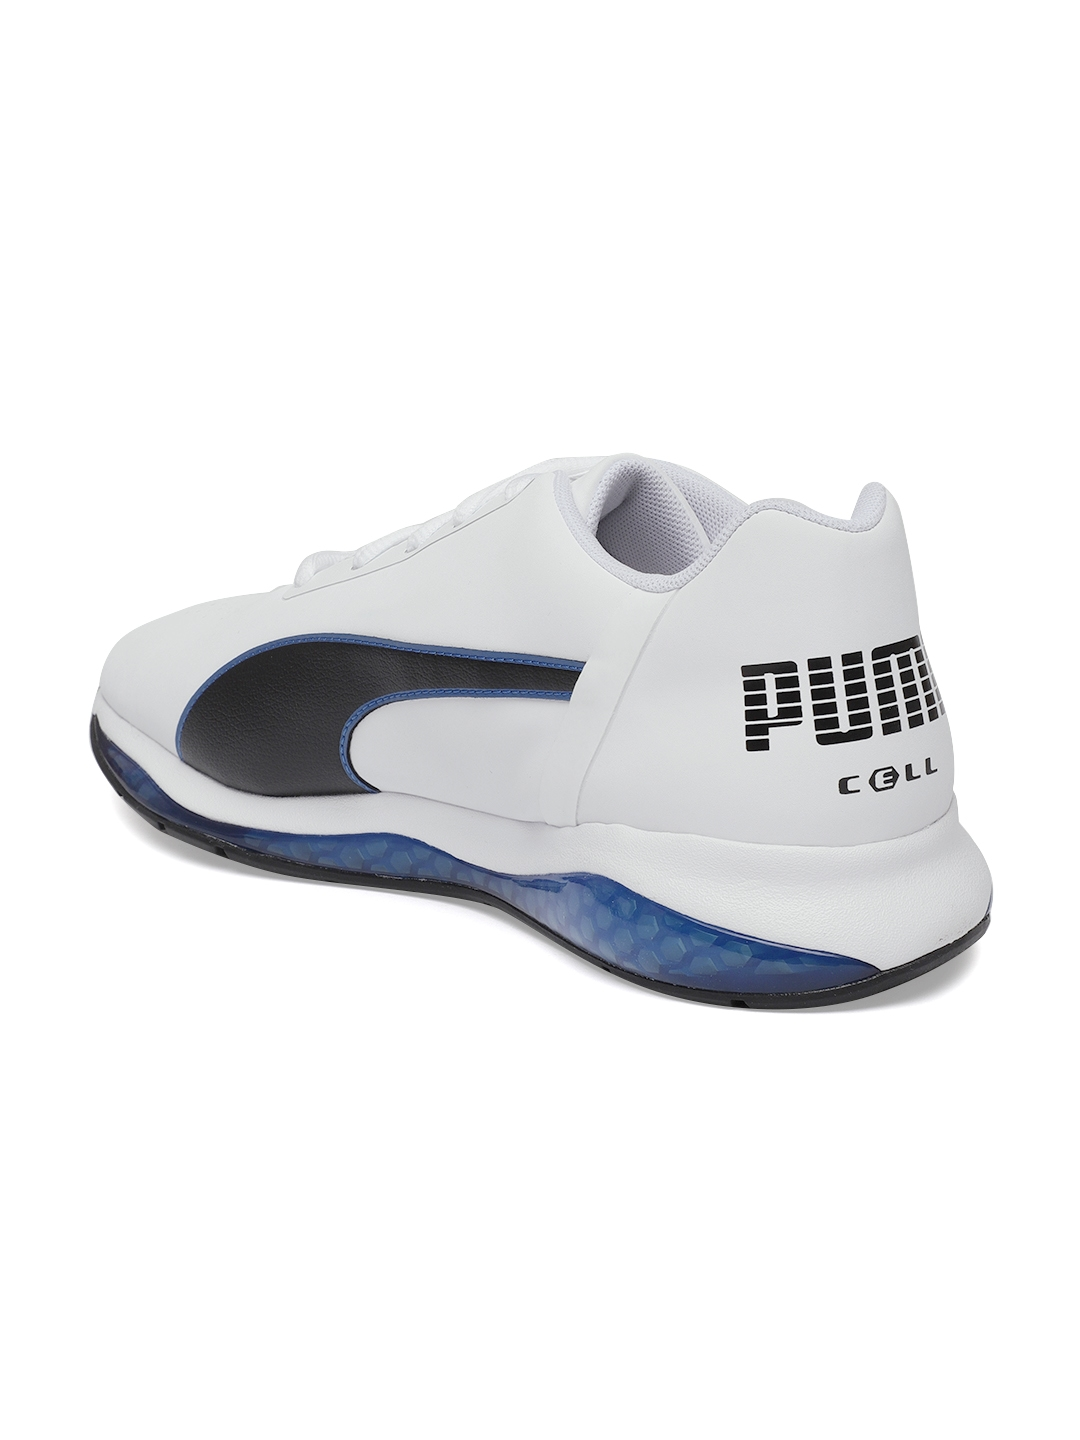 Buy Puma Men White   Blue Cell Ultimate SL Sneakers - Casual Shoes ... 4997ce80b